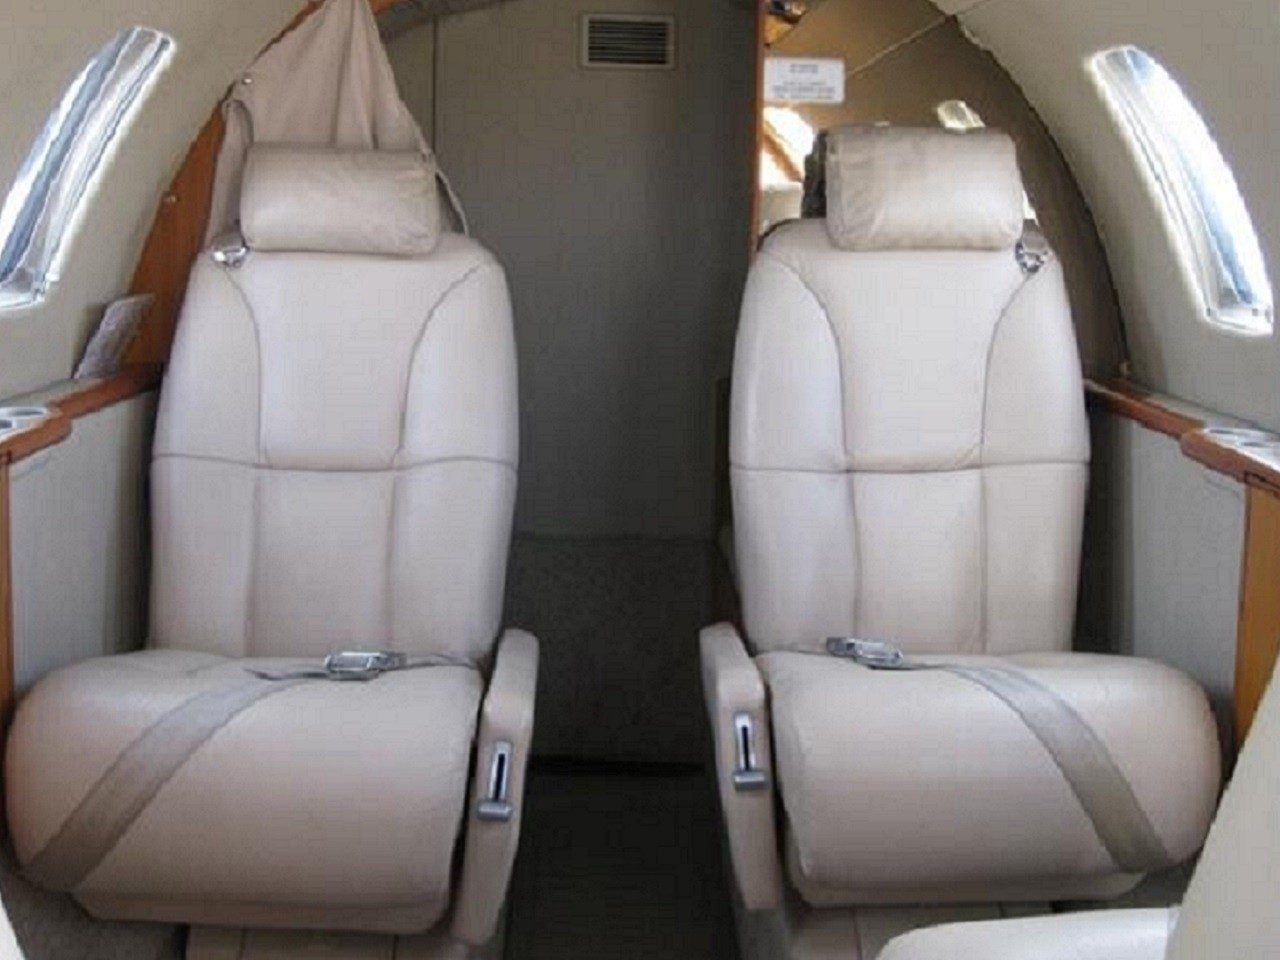 CESSNA CITATION CJ1 2001